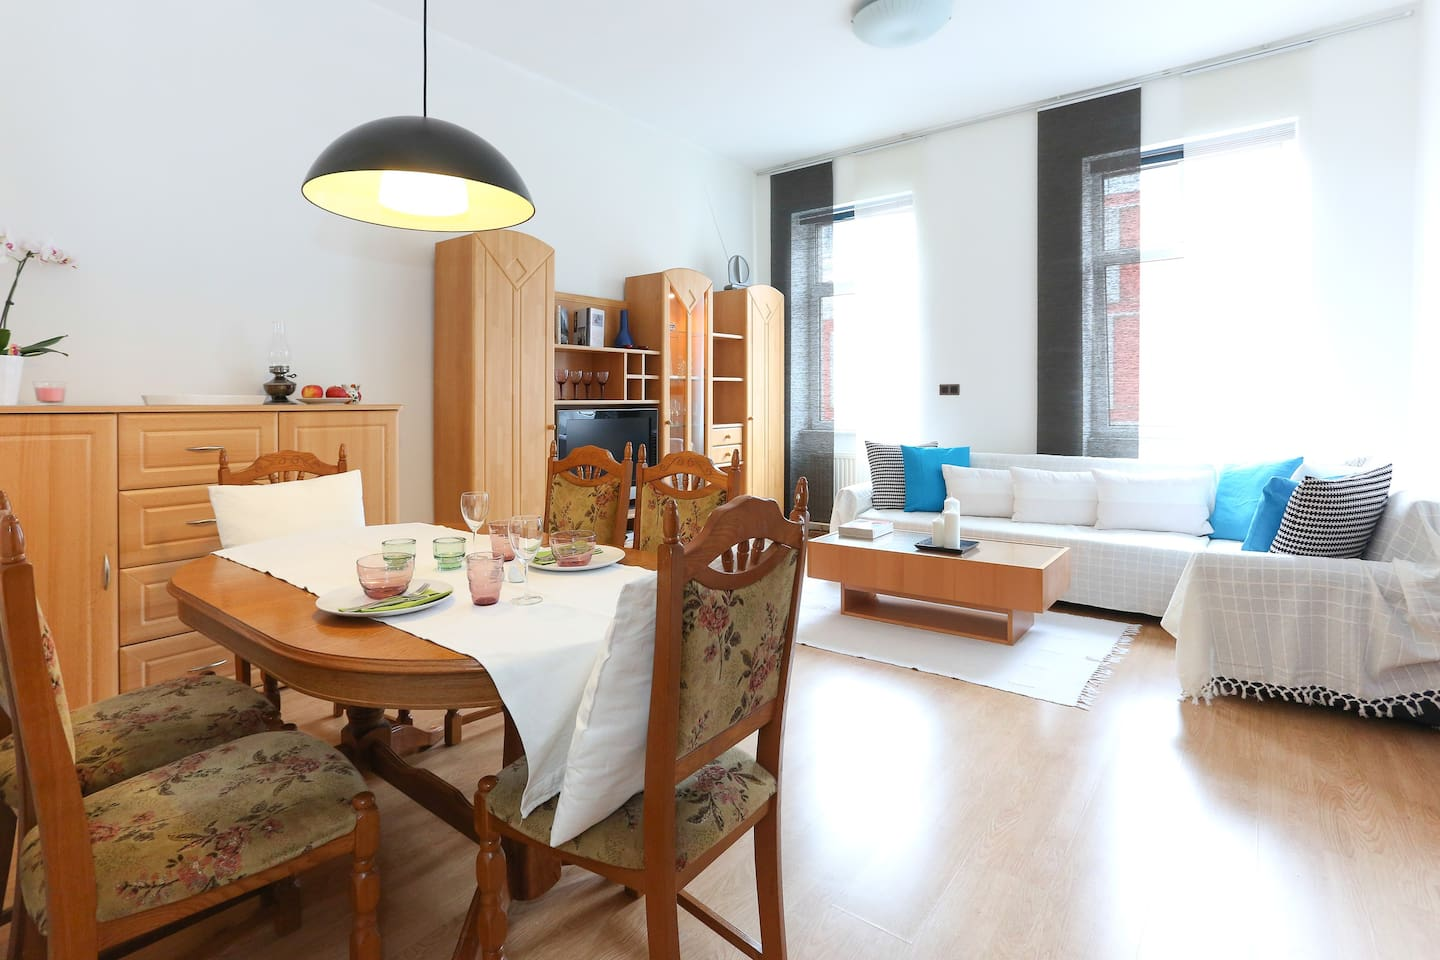 spacious living room with dinging table for 6 persons